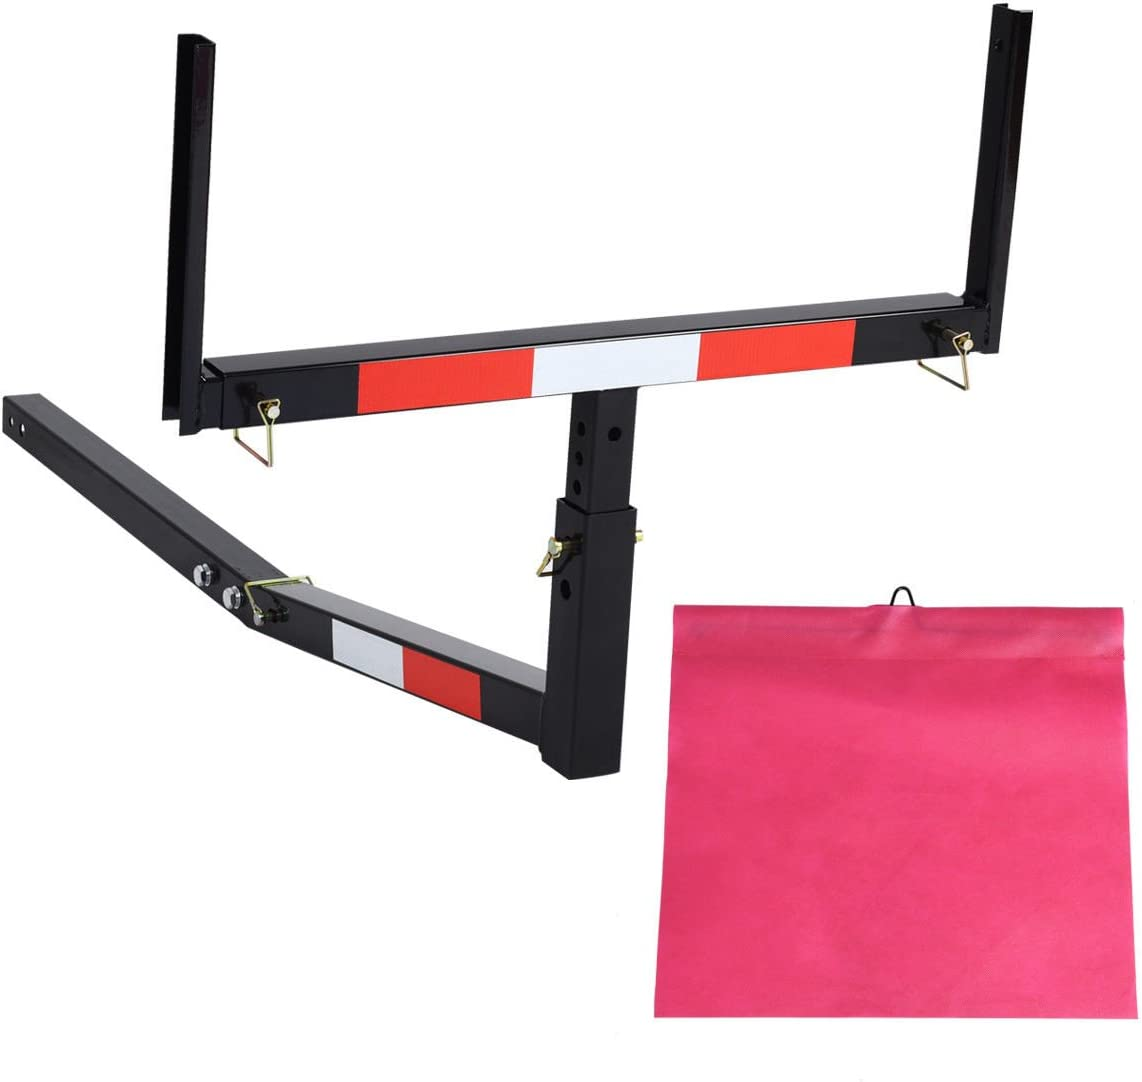 Goplus Pick up Large-scale sale Truck Bed Adjustable Ranking TOP15 Hitch Rac Extender Extension